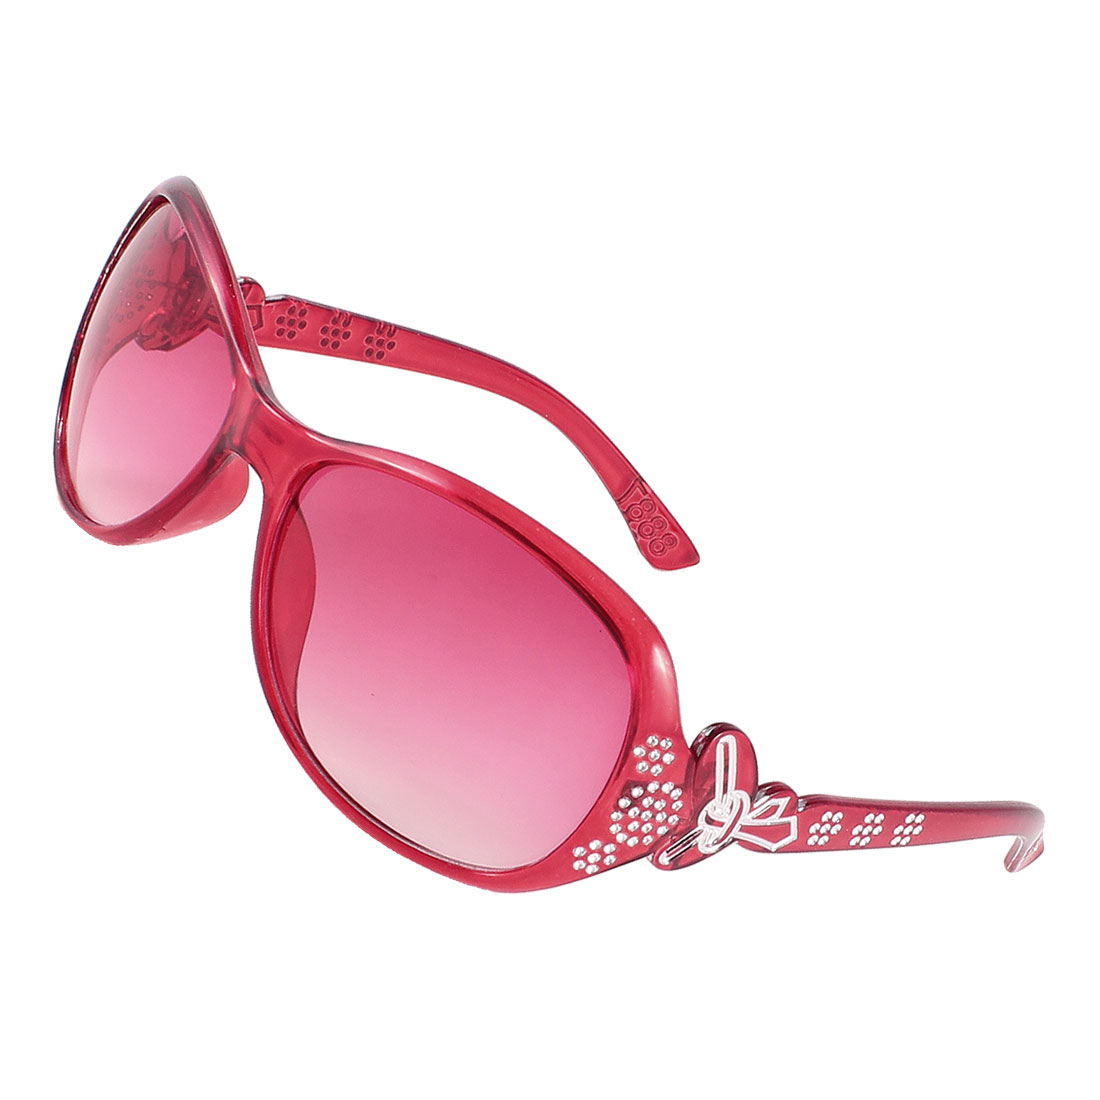 Clear Red Lens Rhinestone Decor Single Brige Sunglasses Red for Women